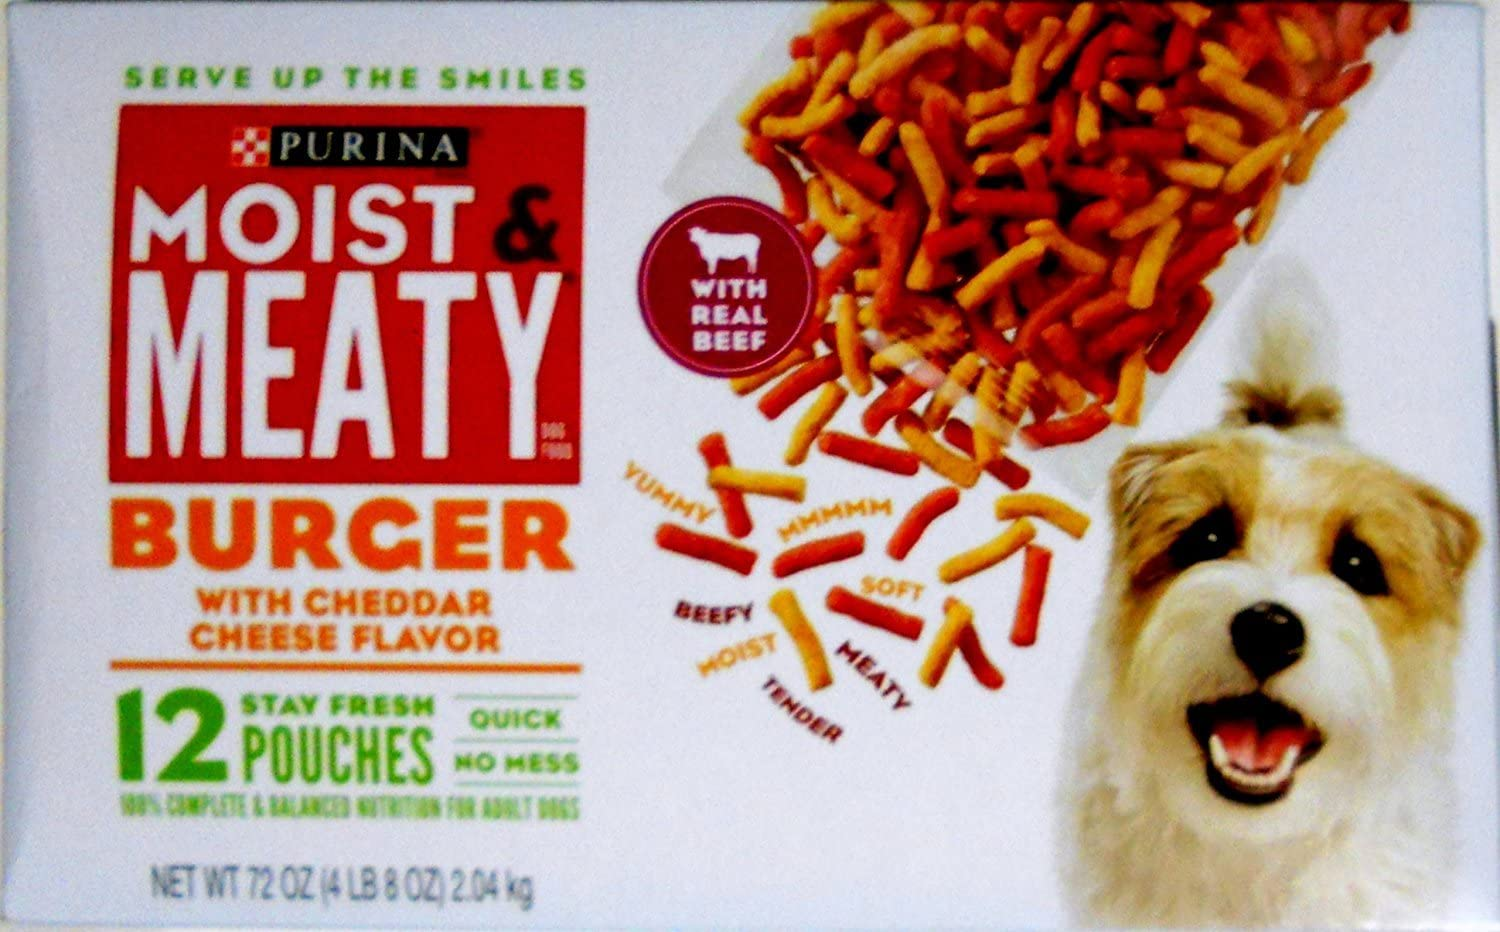 Purina Moist & Meaty Burger with Cheddar Cheese Flavor Dog Food